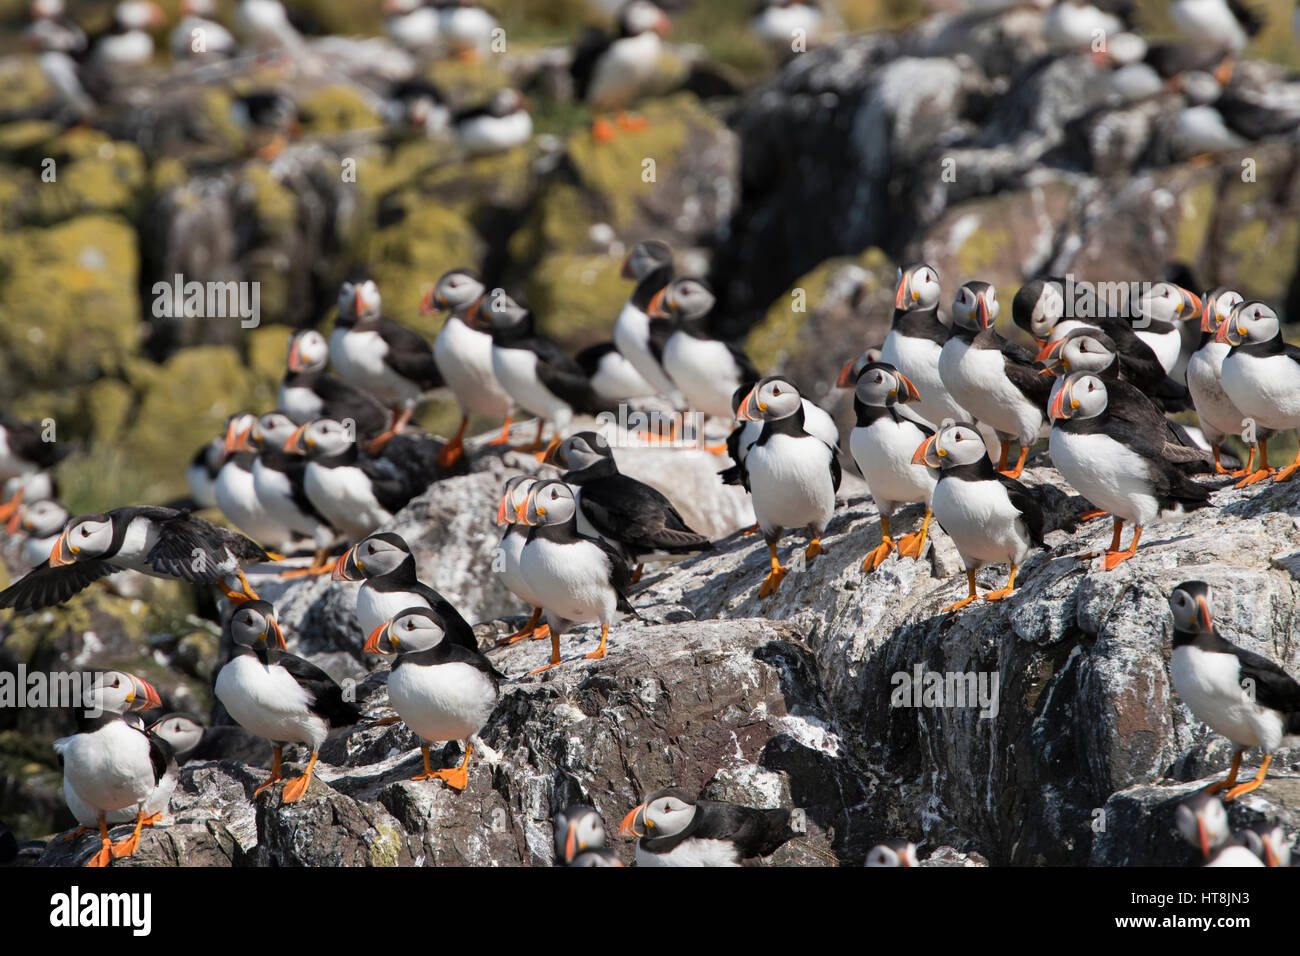 A large group of Atlantic Puffins on breeding grounds, Farne Isles, Northumberland, UK - Stock Image